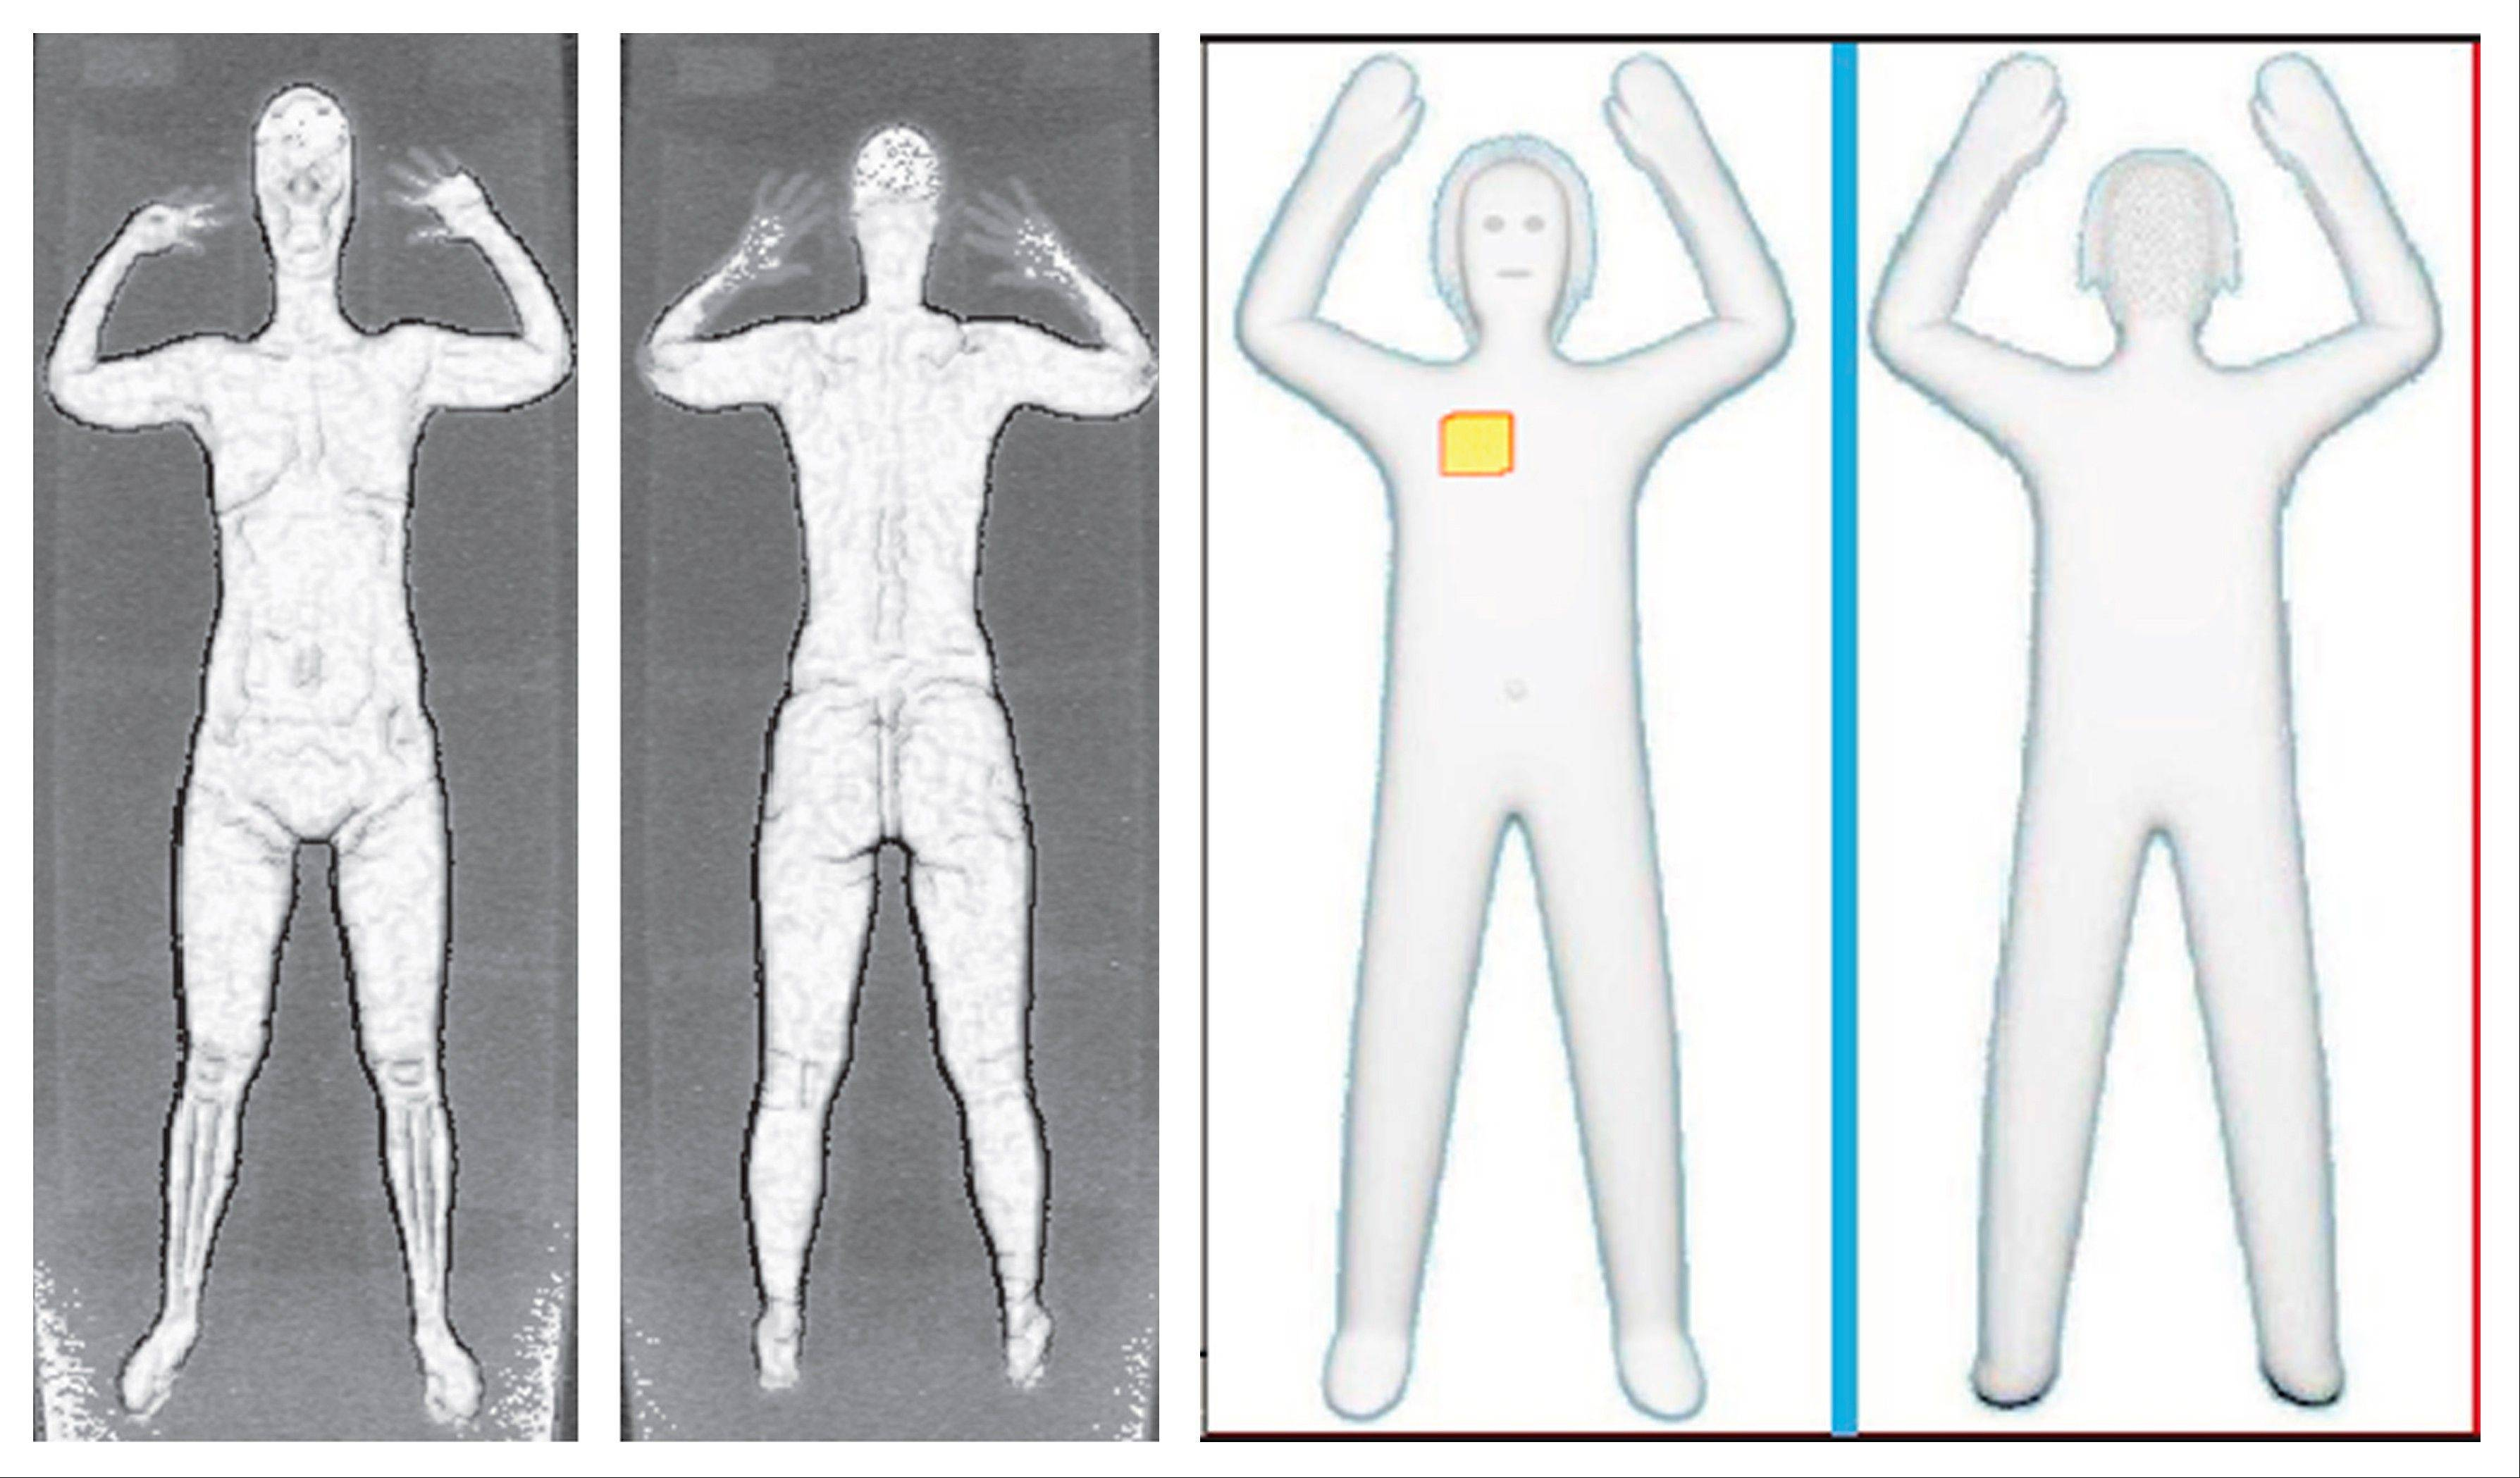 These two sets of images provided by the Transportation Security Administration are samples that show details of what TSA officers see on computer monitors when passengers pass through airport body scanners. At left are two images using backscatter advanced image X-ray technology from the huge scanners that were introduced in 2010 at O'Hare International Airport. At right are images from new scanners using new millimeter wave technology that produces a cartoon-like outline rather than naked images of passengers produced by using X-rays.